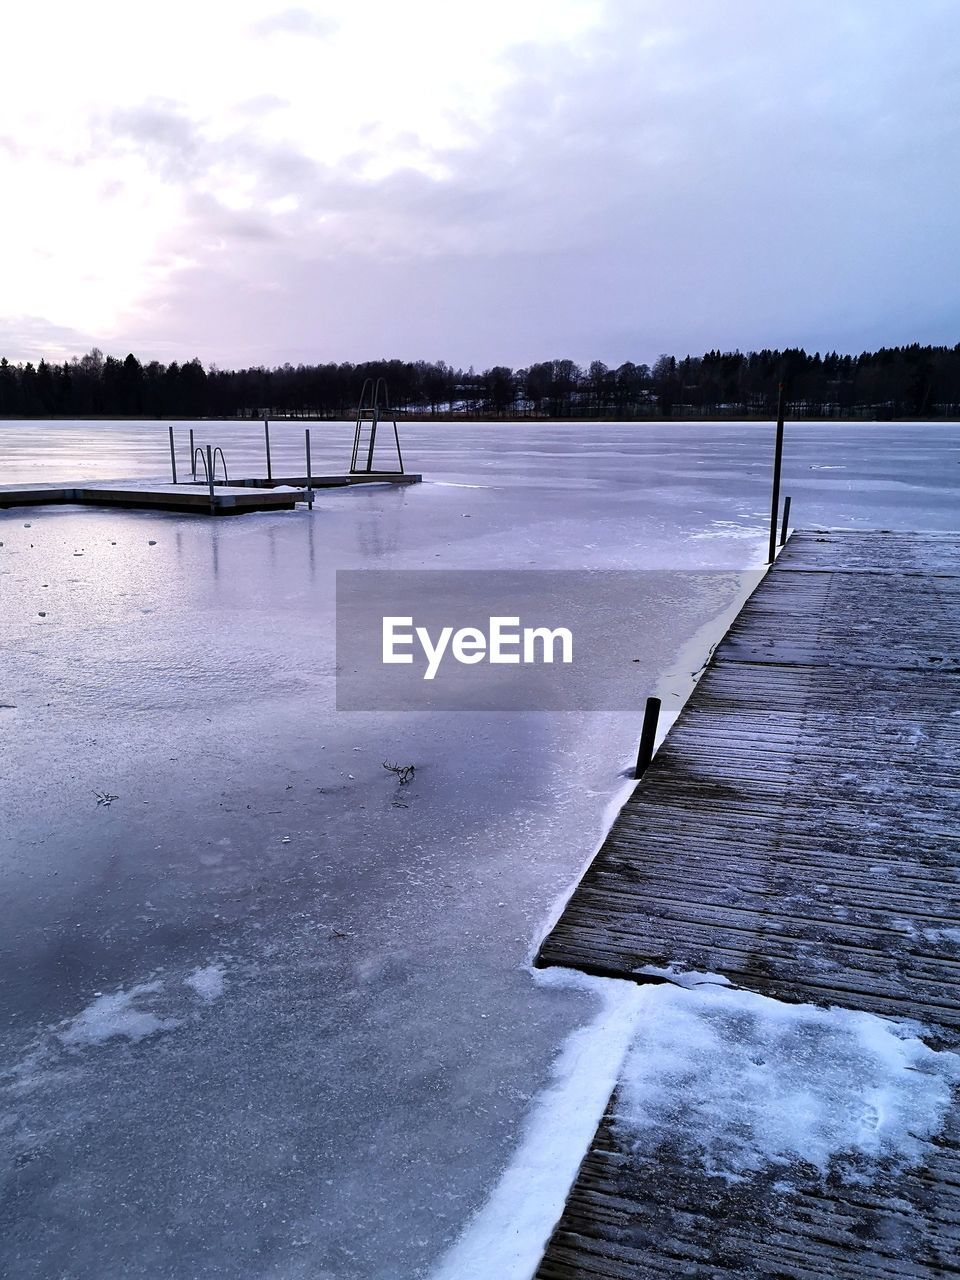 water, sky, cloud - sky, nature, cold temperature, tree, winter, no people, beauty in nature, scenics - nature, day, tranquility, lake, plant, snow, outdoors, pier, tranquil scene